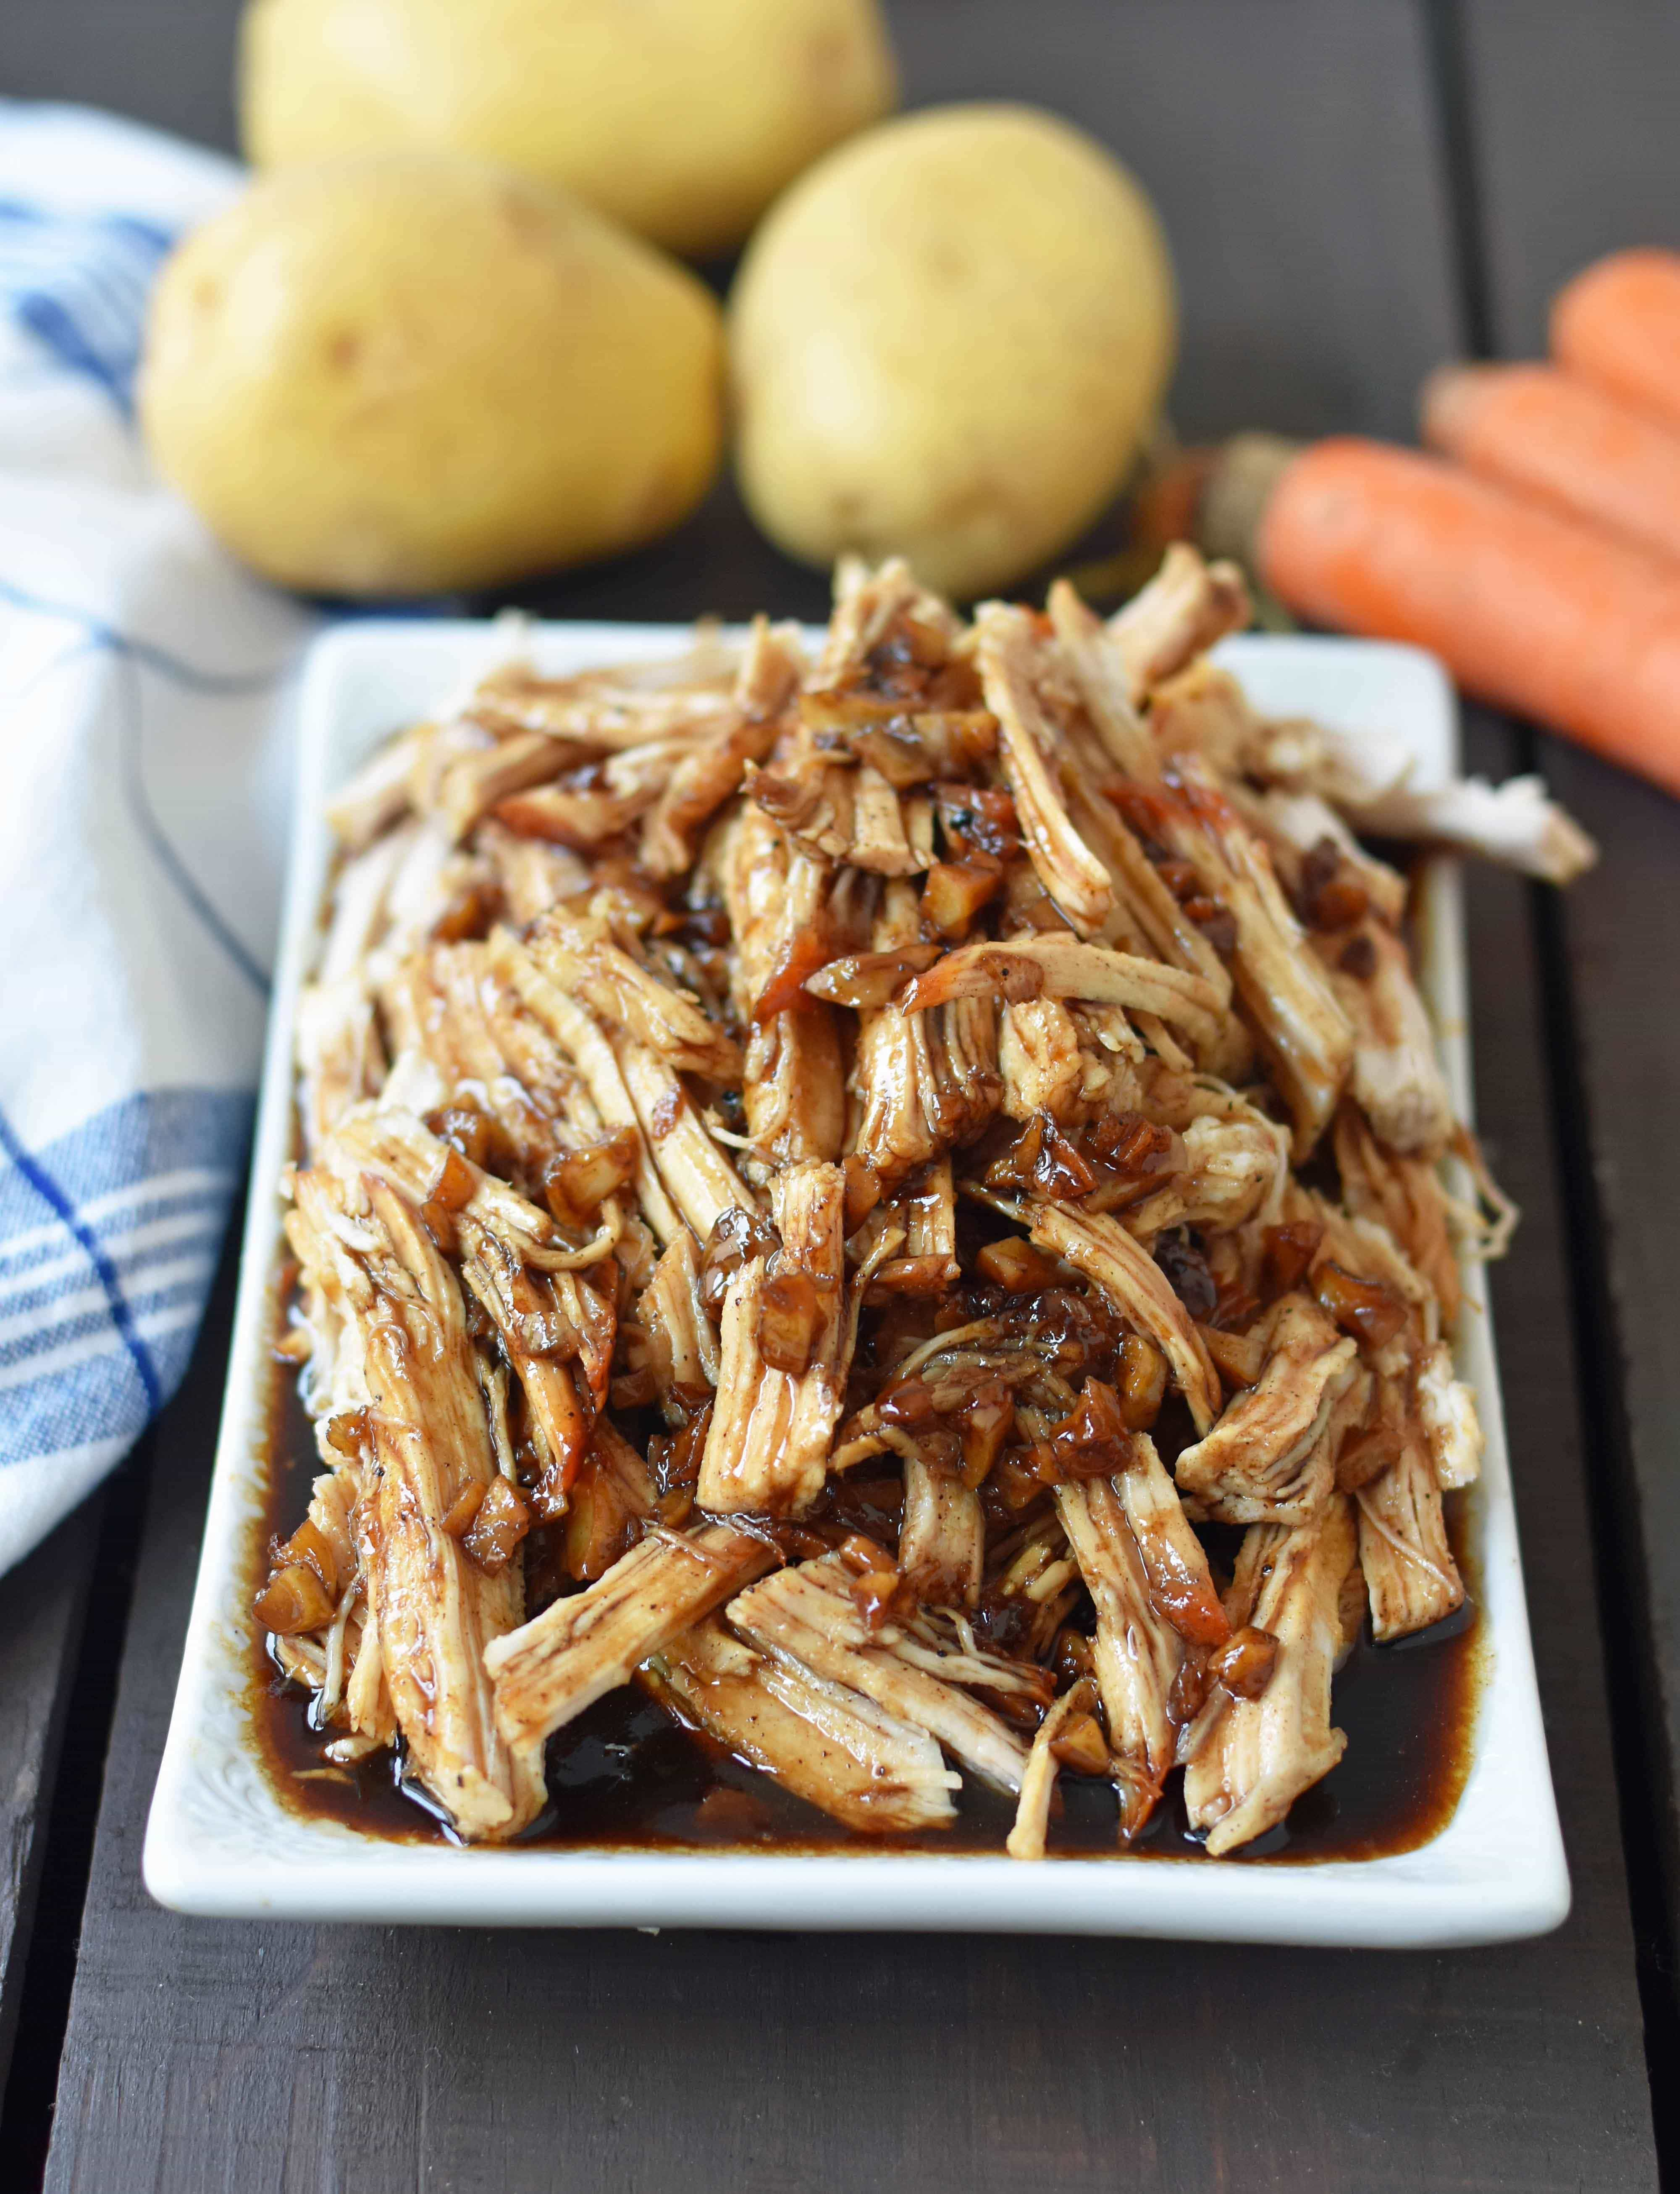 Brown Sugar Balsamic Pork. Tender lean pork loin slow cooked in a brown sugar garlic balsamic glaze. An easy flavorful meal made in a slow cooker or instant pot. www.modernhoney.com